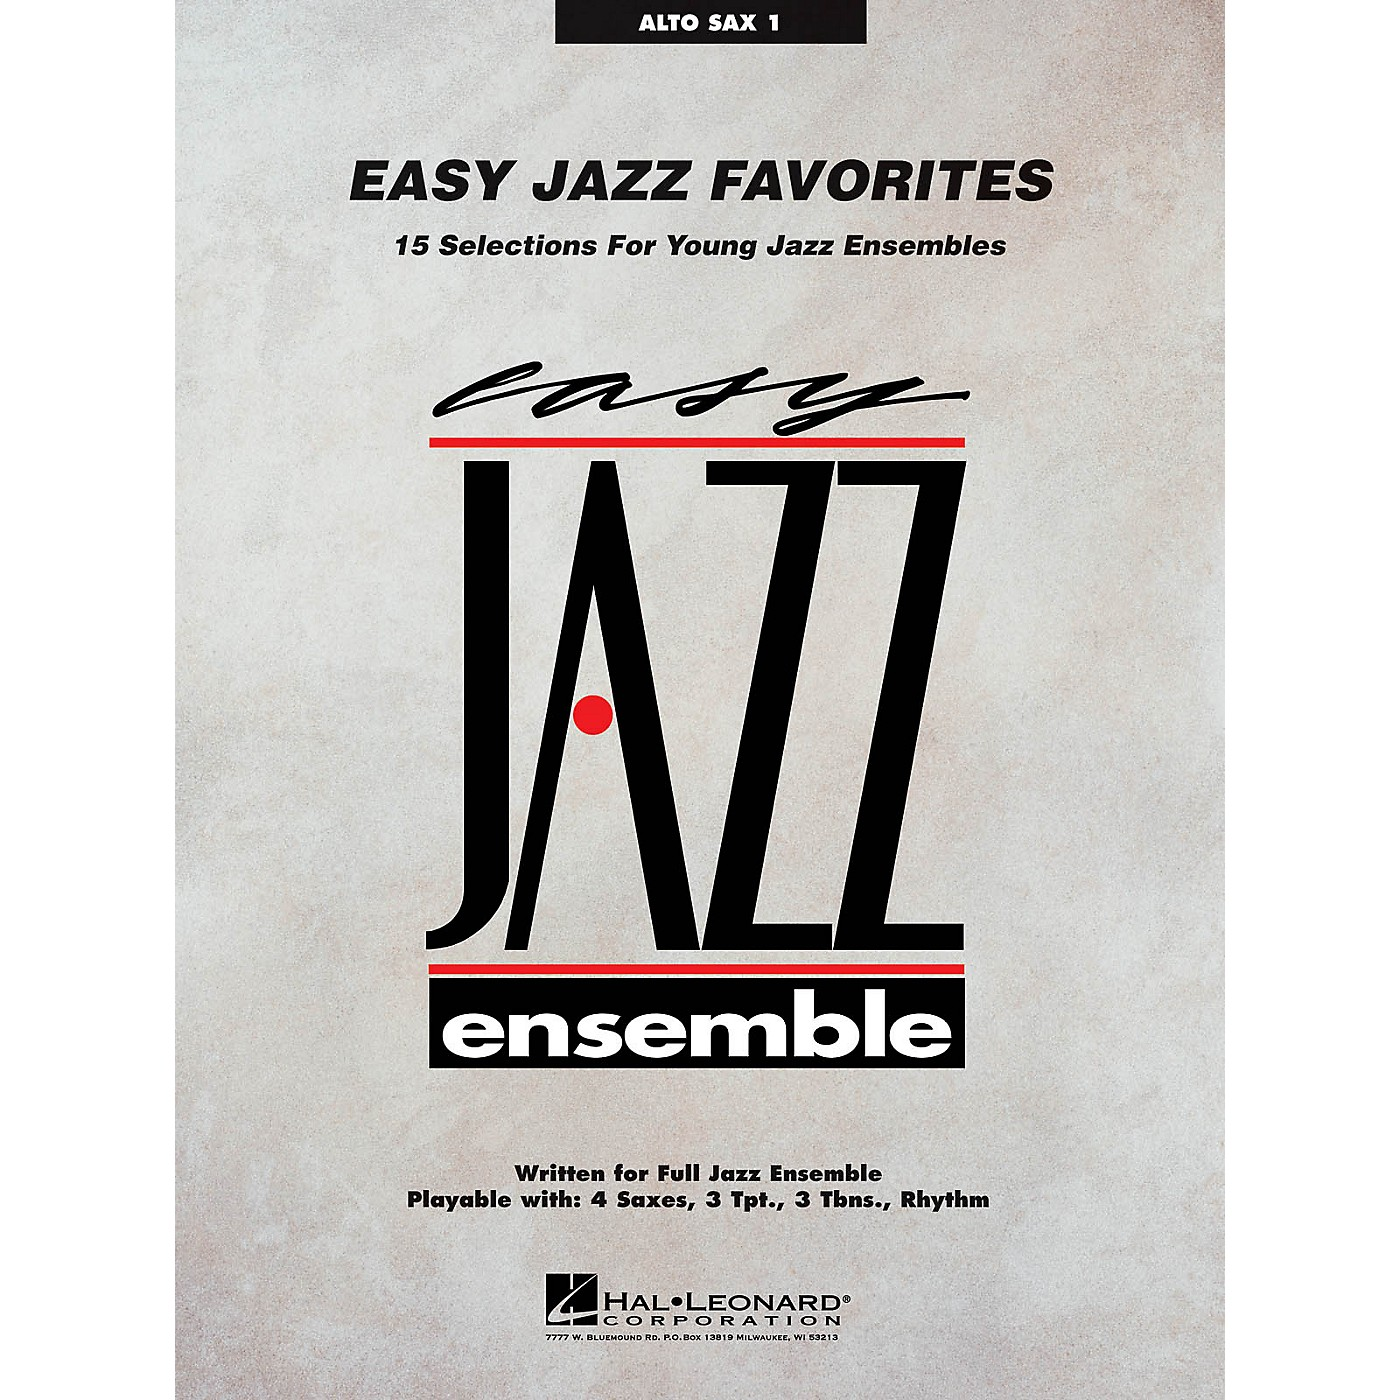 Hal Leonard Easy Jazz Favorites - Alto Sax 1 Jazz Band Level 2 Composed by Various thumbnail